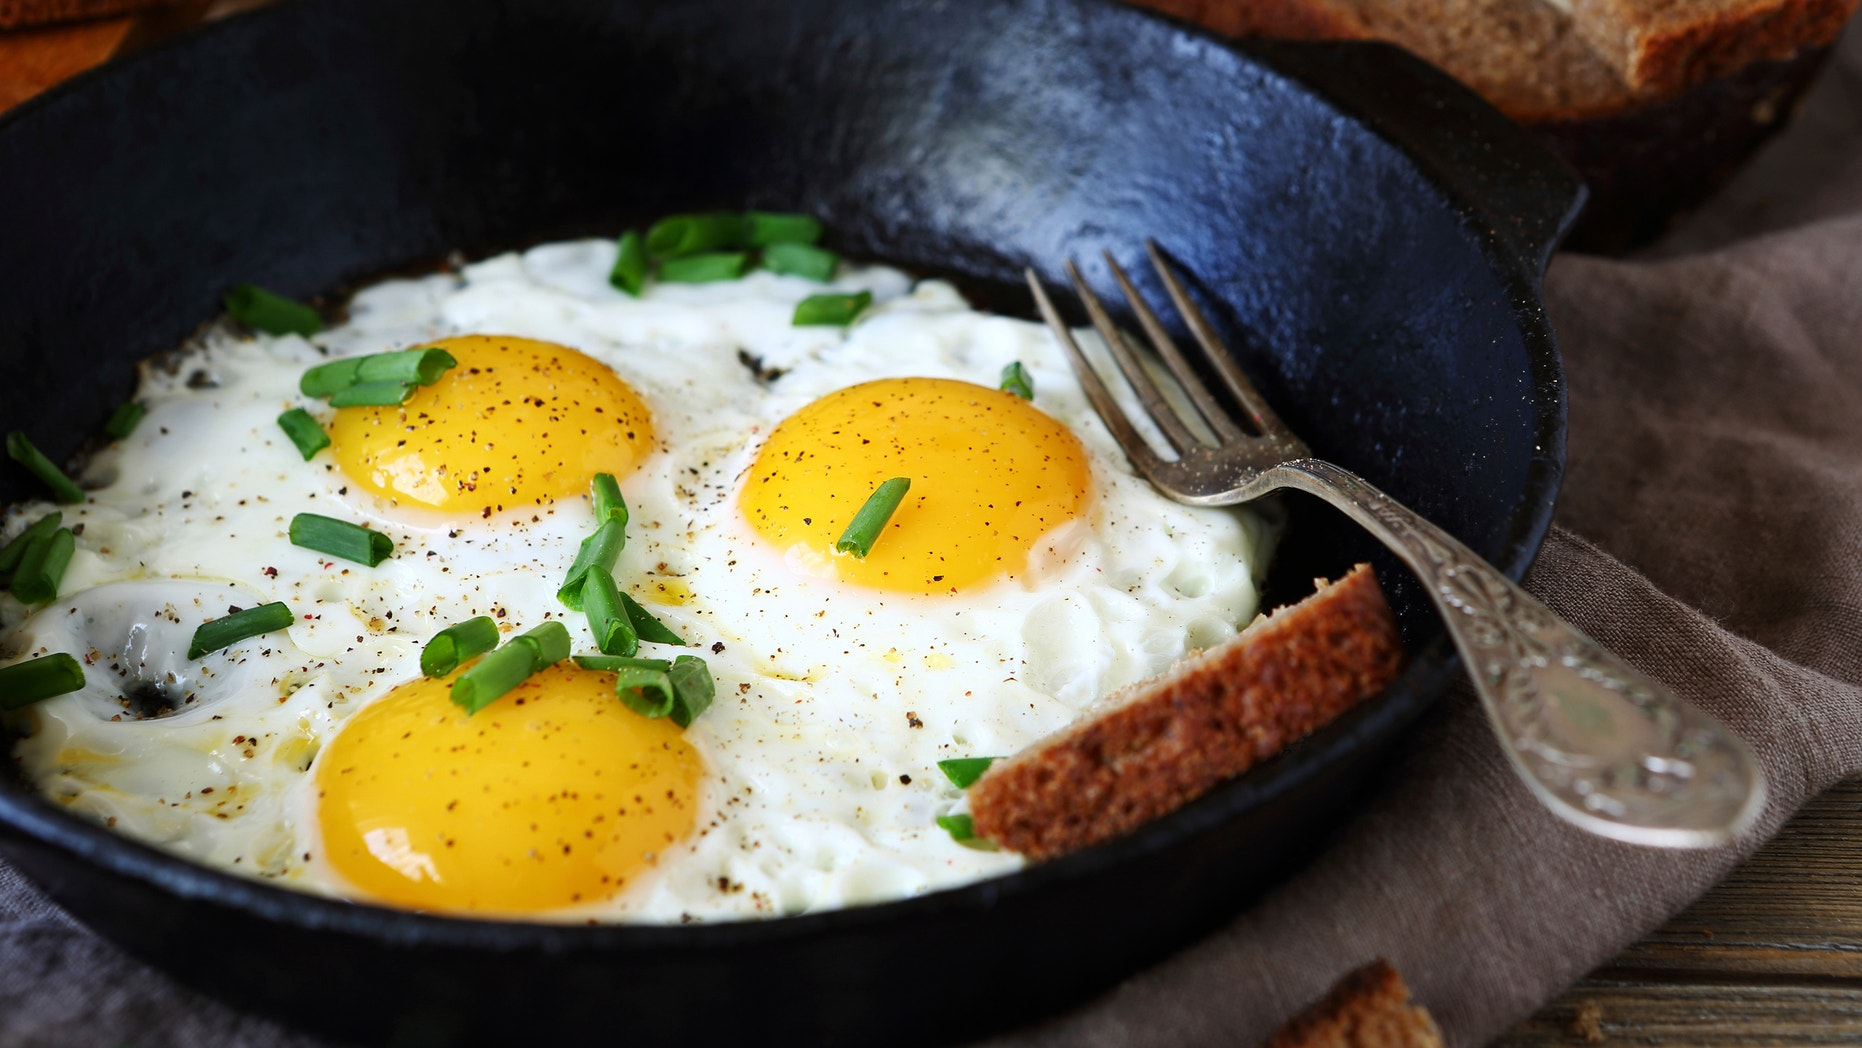 Hot fried eggs in a pan, close up